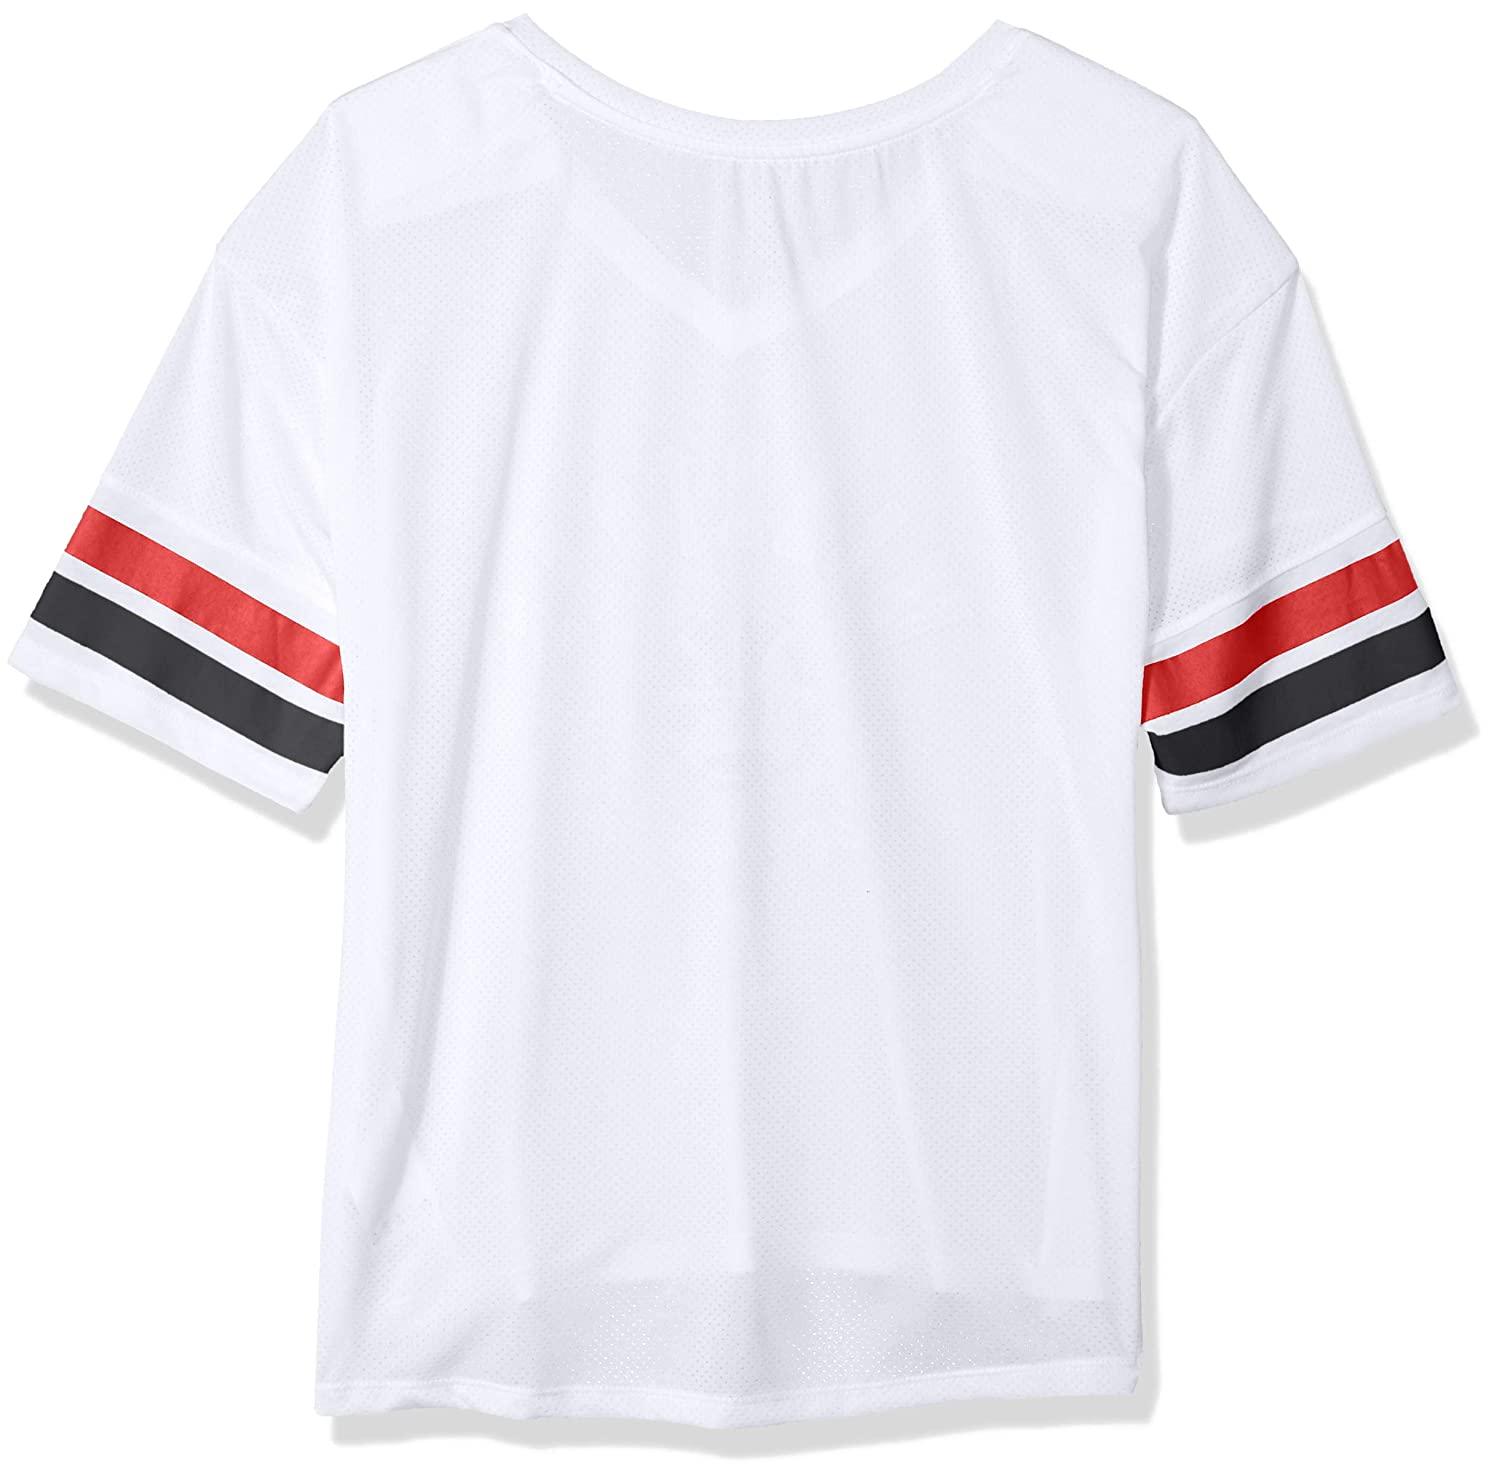 NBA by Outerstuff NBA Juniors Chicago Bulls Mesh Blocker Short Sleeve Top 11-13 Large White